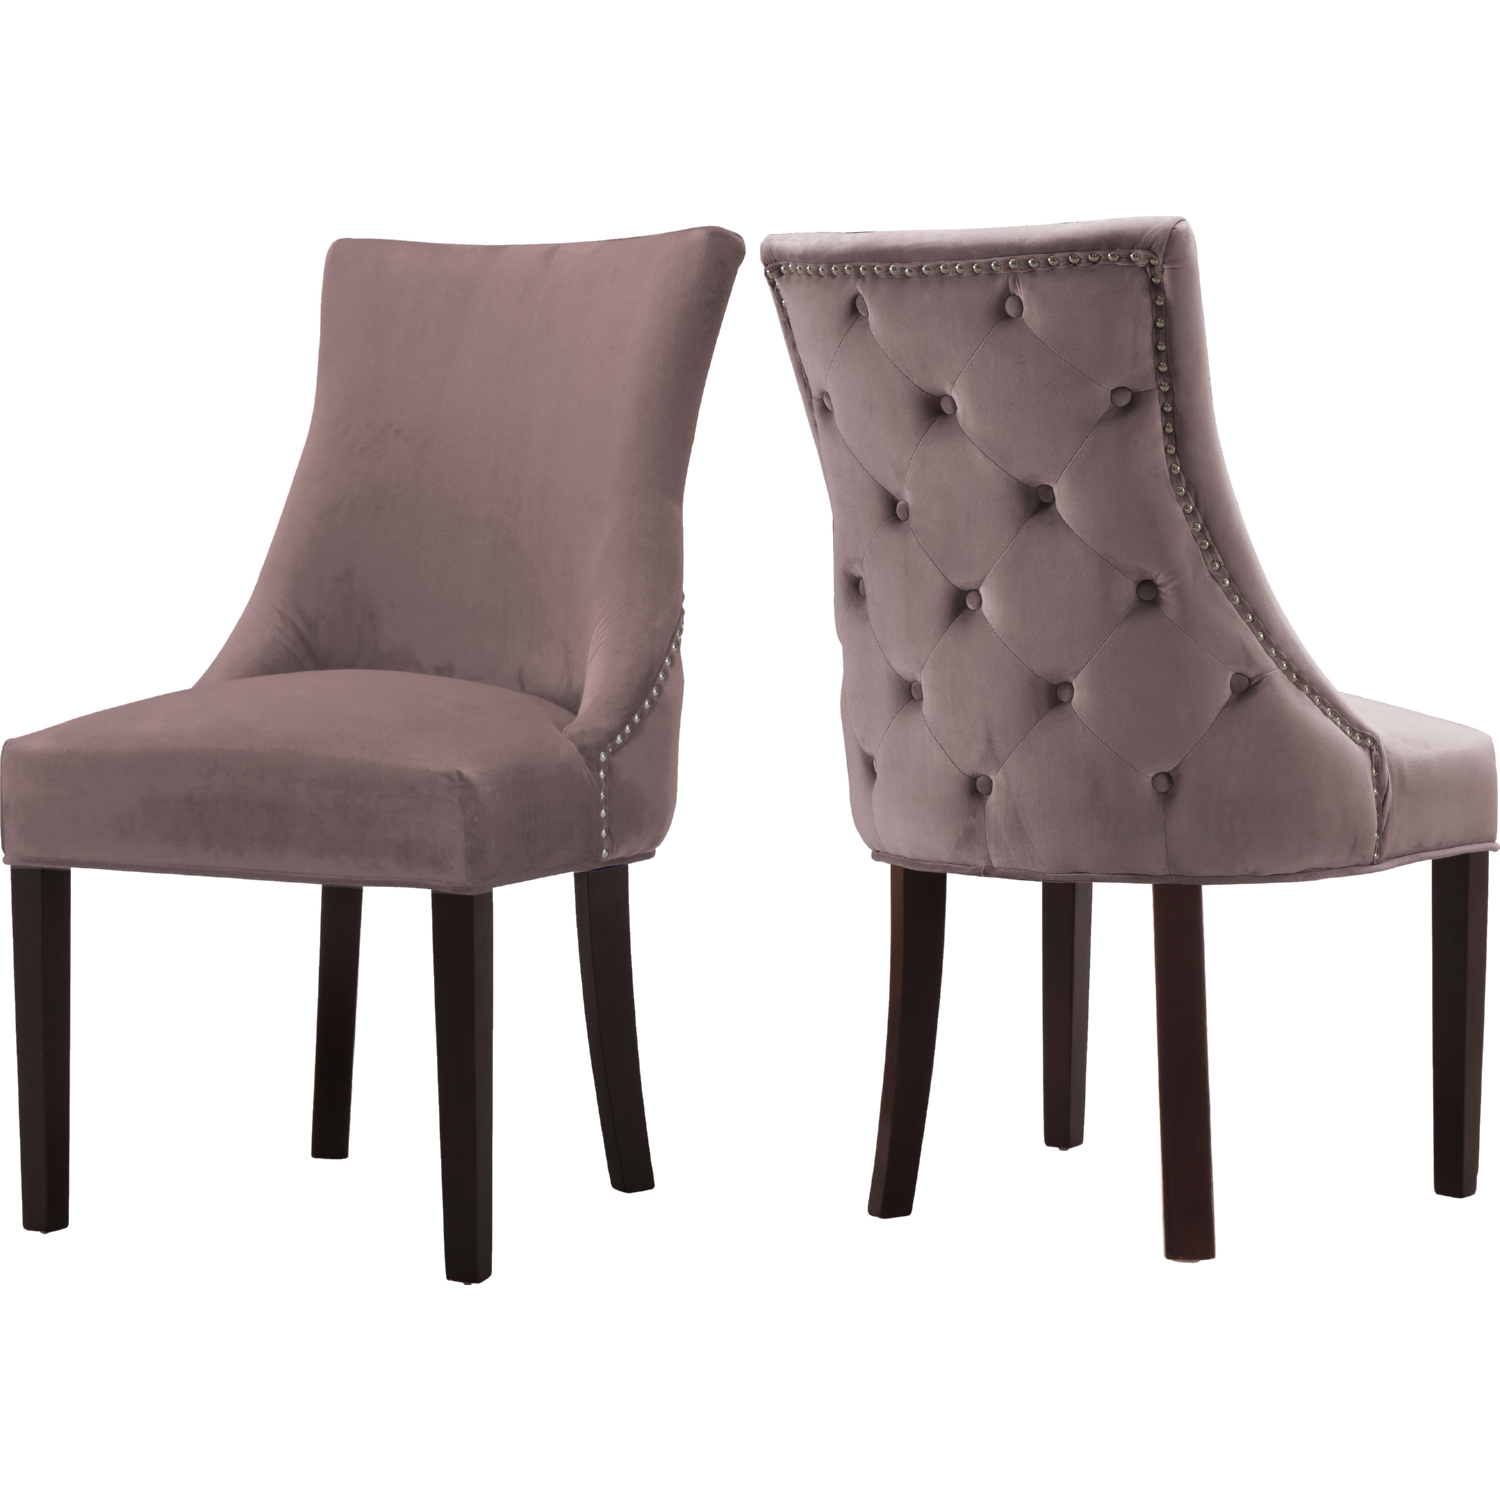 Hannah Dining Chair In Pink Velvet W Back Tufting Set Of 2 By Meridian Furniture